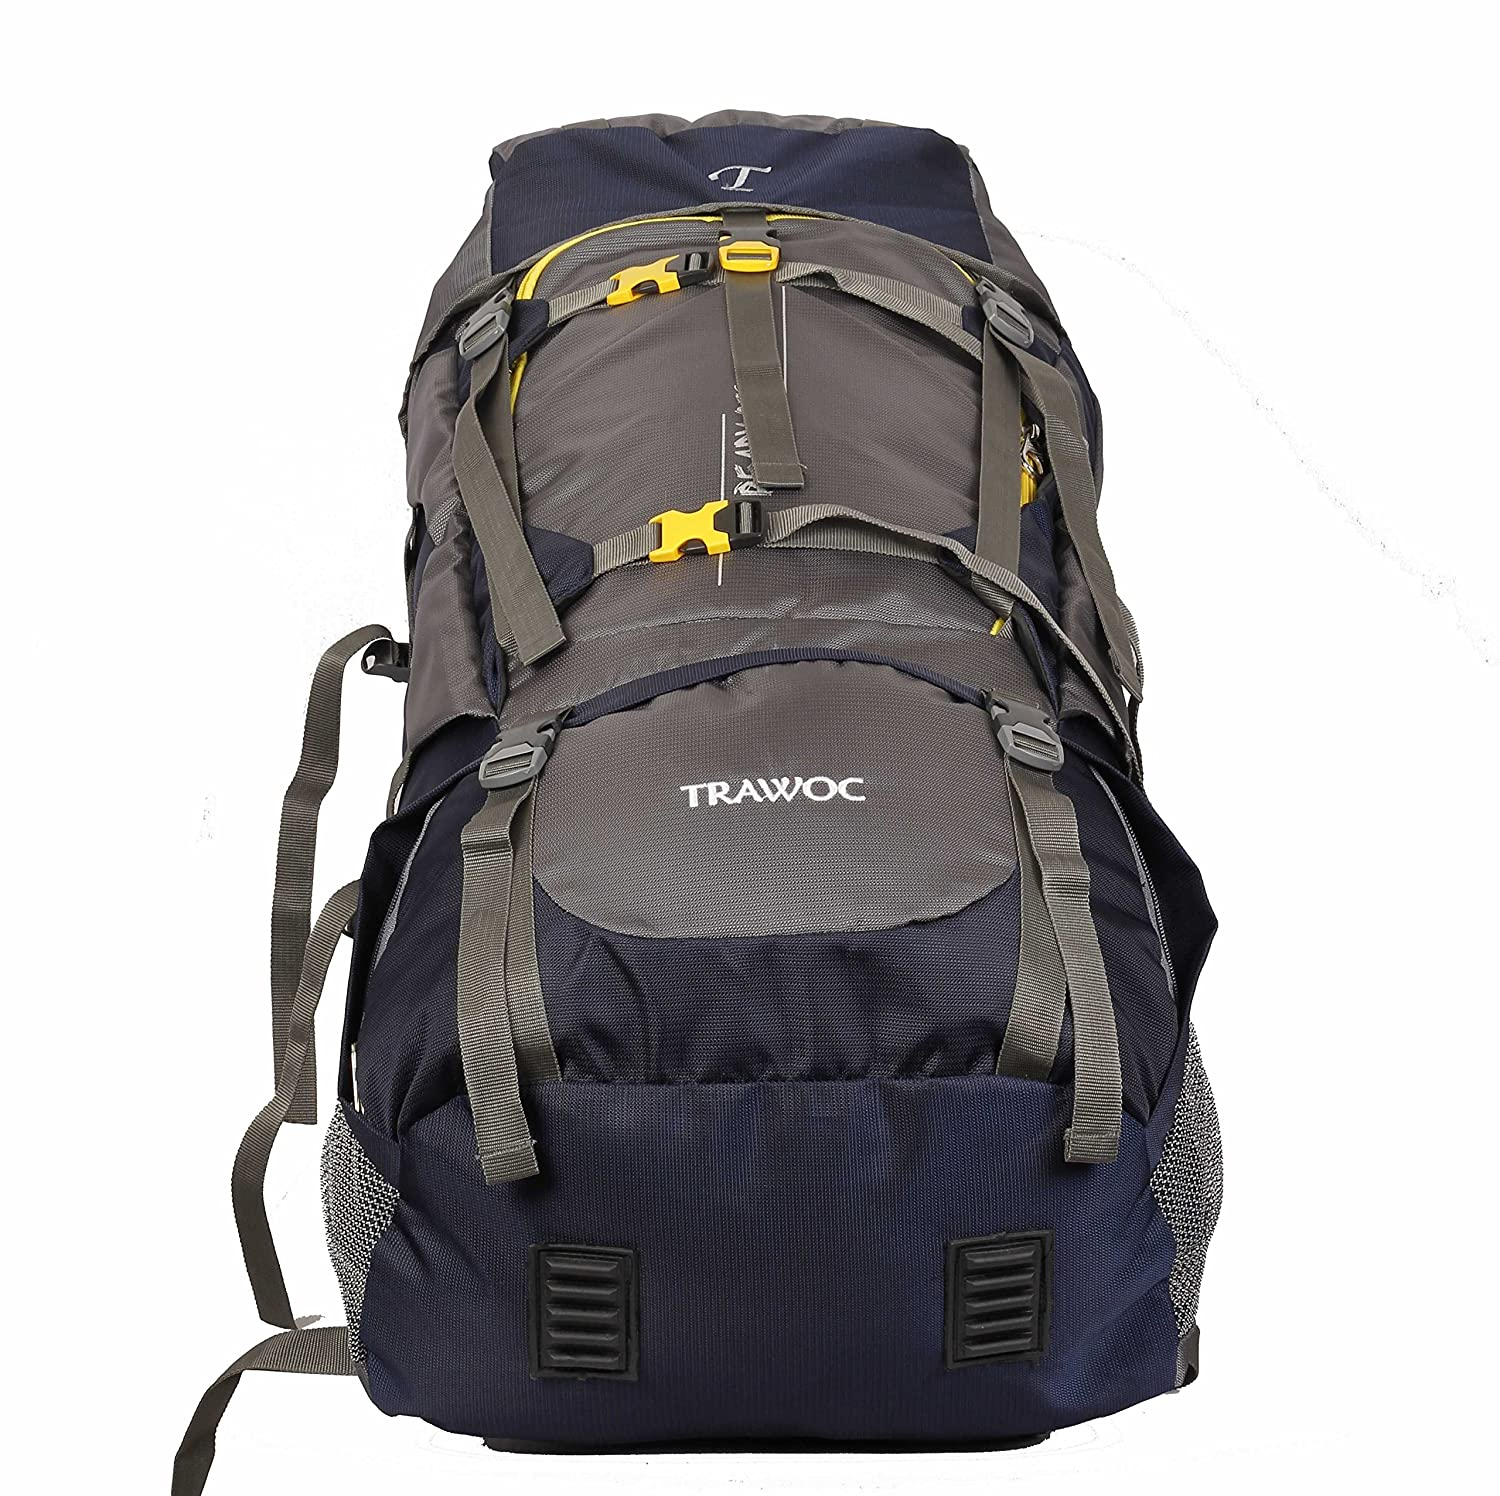 108d3c2f891f4 TRAWOC 60L Travel Backpack for Outdoor Sport Camp Hiking Trekking Bag  Camping Rucksack HK006 (Grey) 1 Year Warranty  Amazon.in  Bags